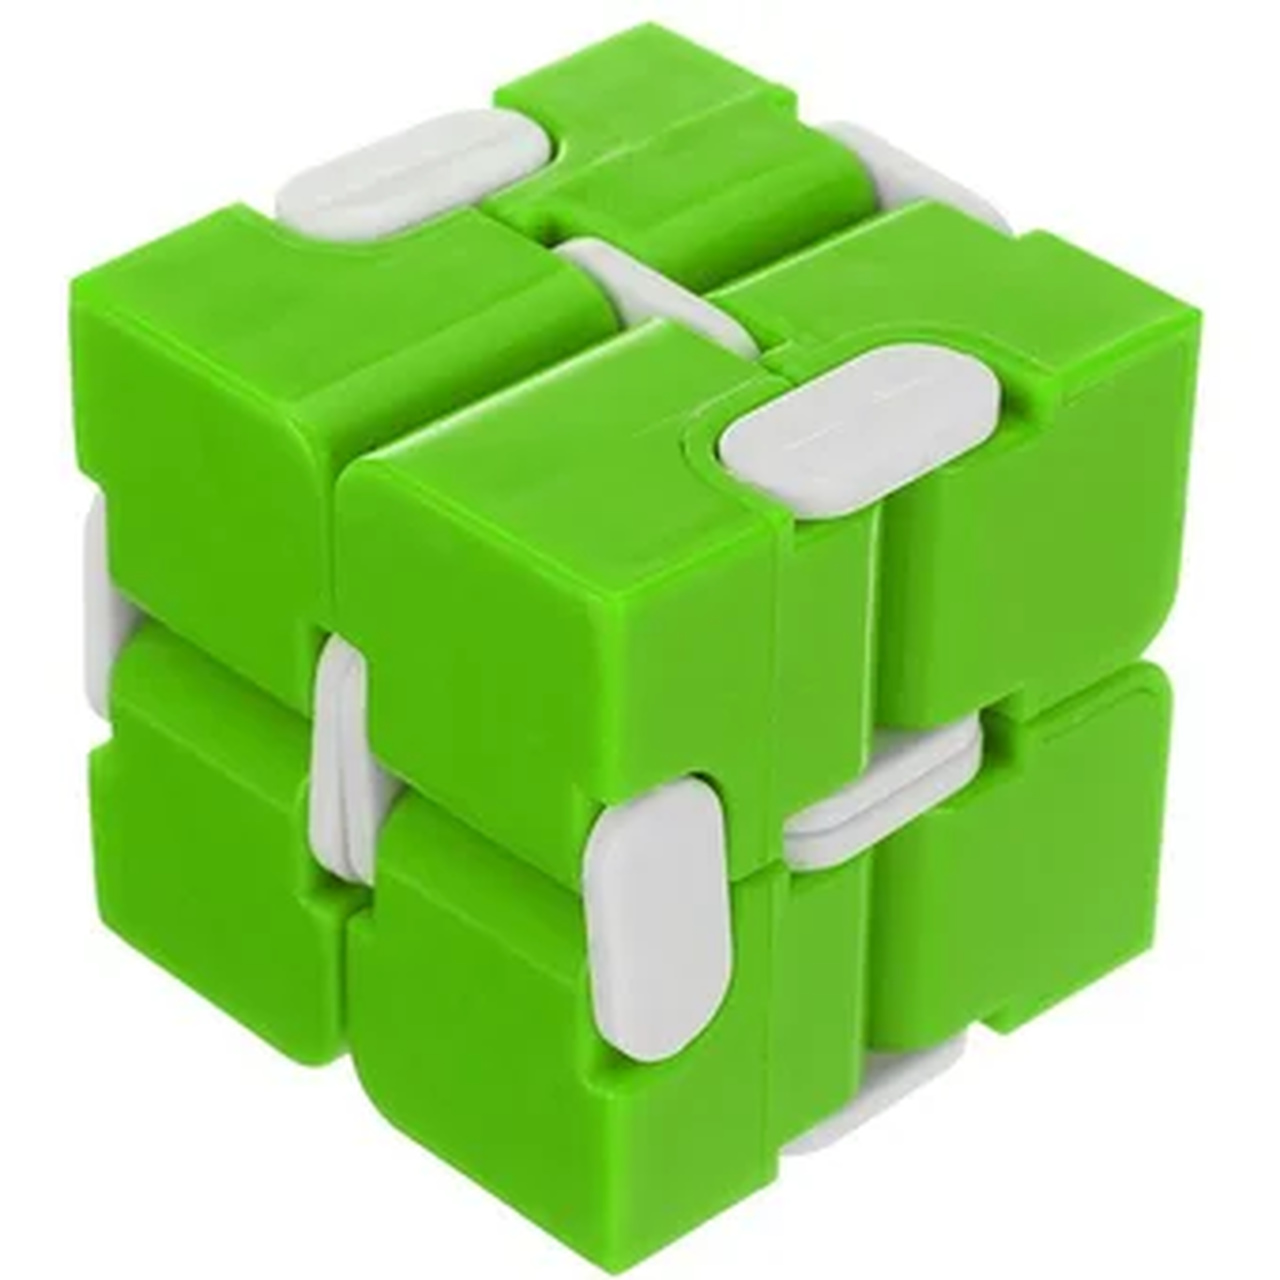 Cubo Magico Infinito Verde (My Infinity Cube)